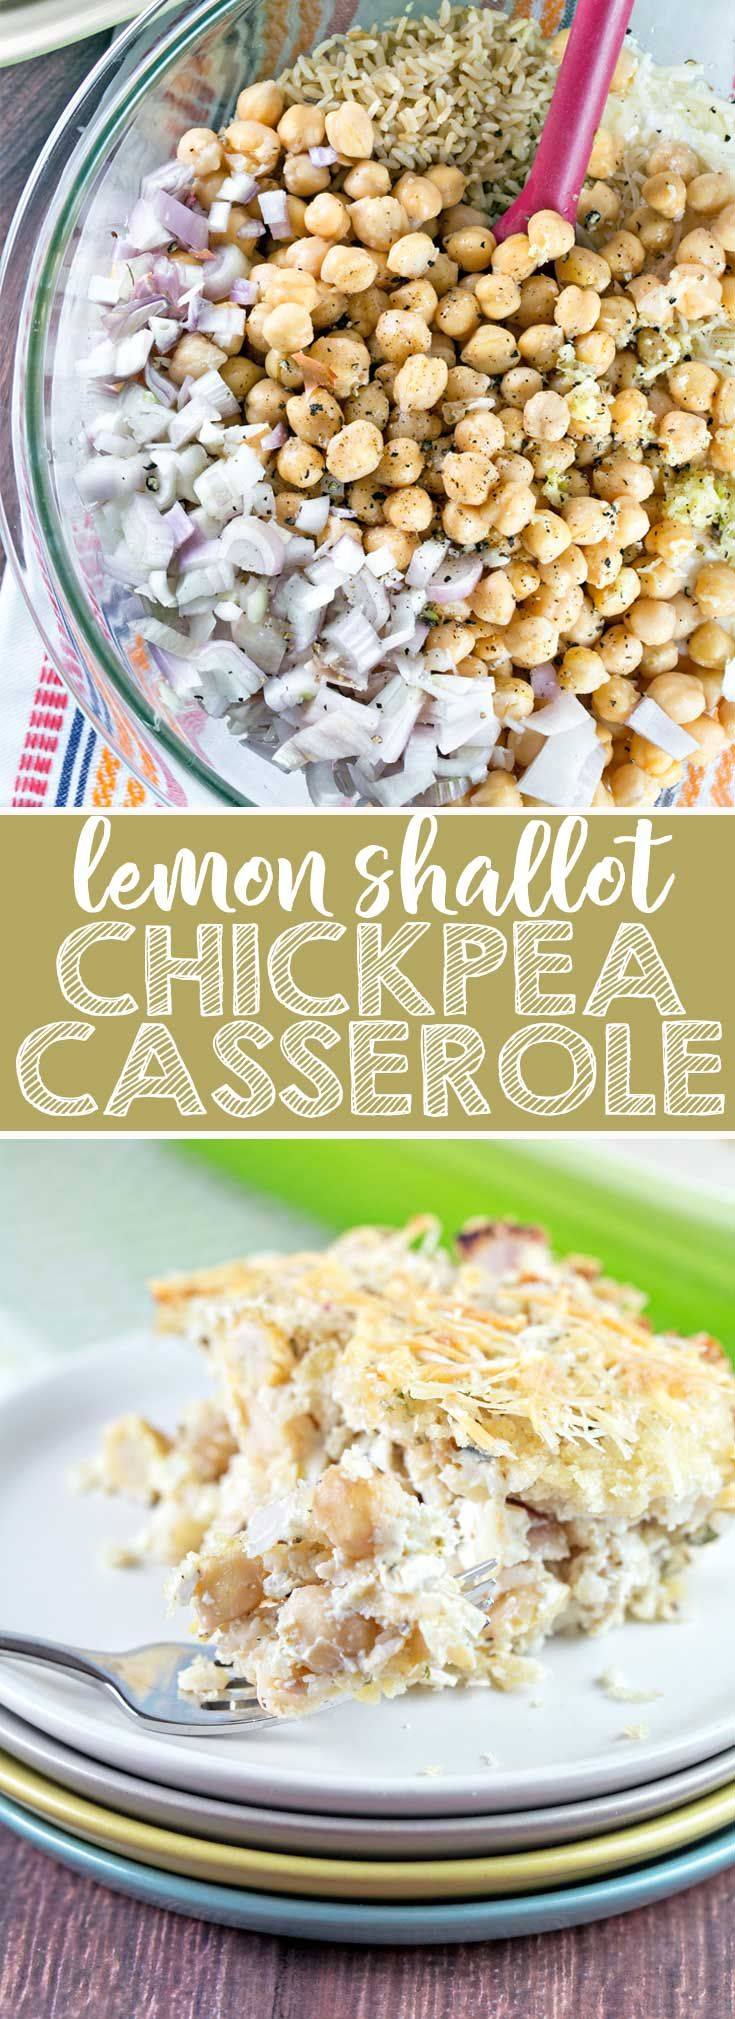 Lemon Shallot Chickpea Casserole: a hearty yet light one-dish vegetarian casserole, full of protein and fresh flavors. Freezer friendly! {Bunsen Burner Bakery} #vegetarian #dinner #casserole #chickpeas via @bnsnbrnrbakery